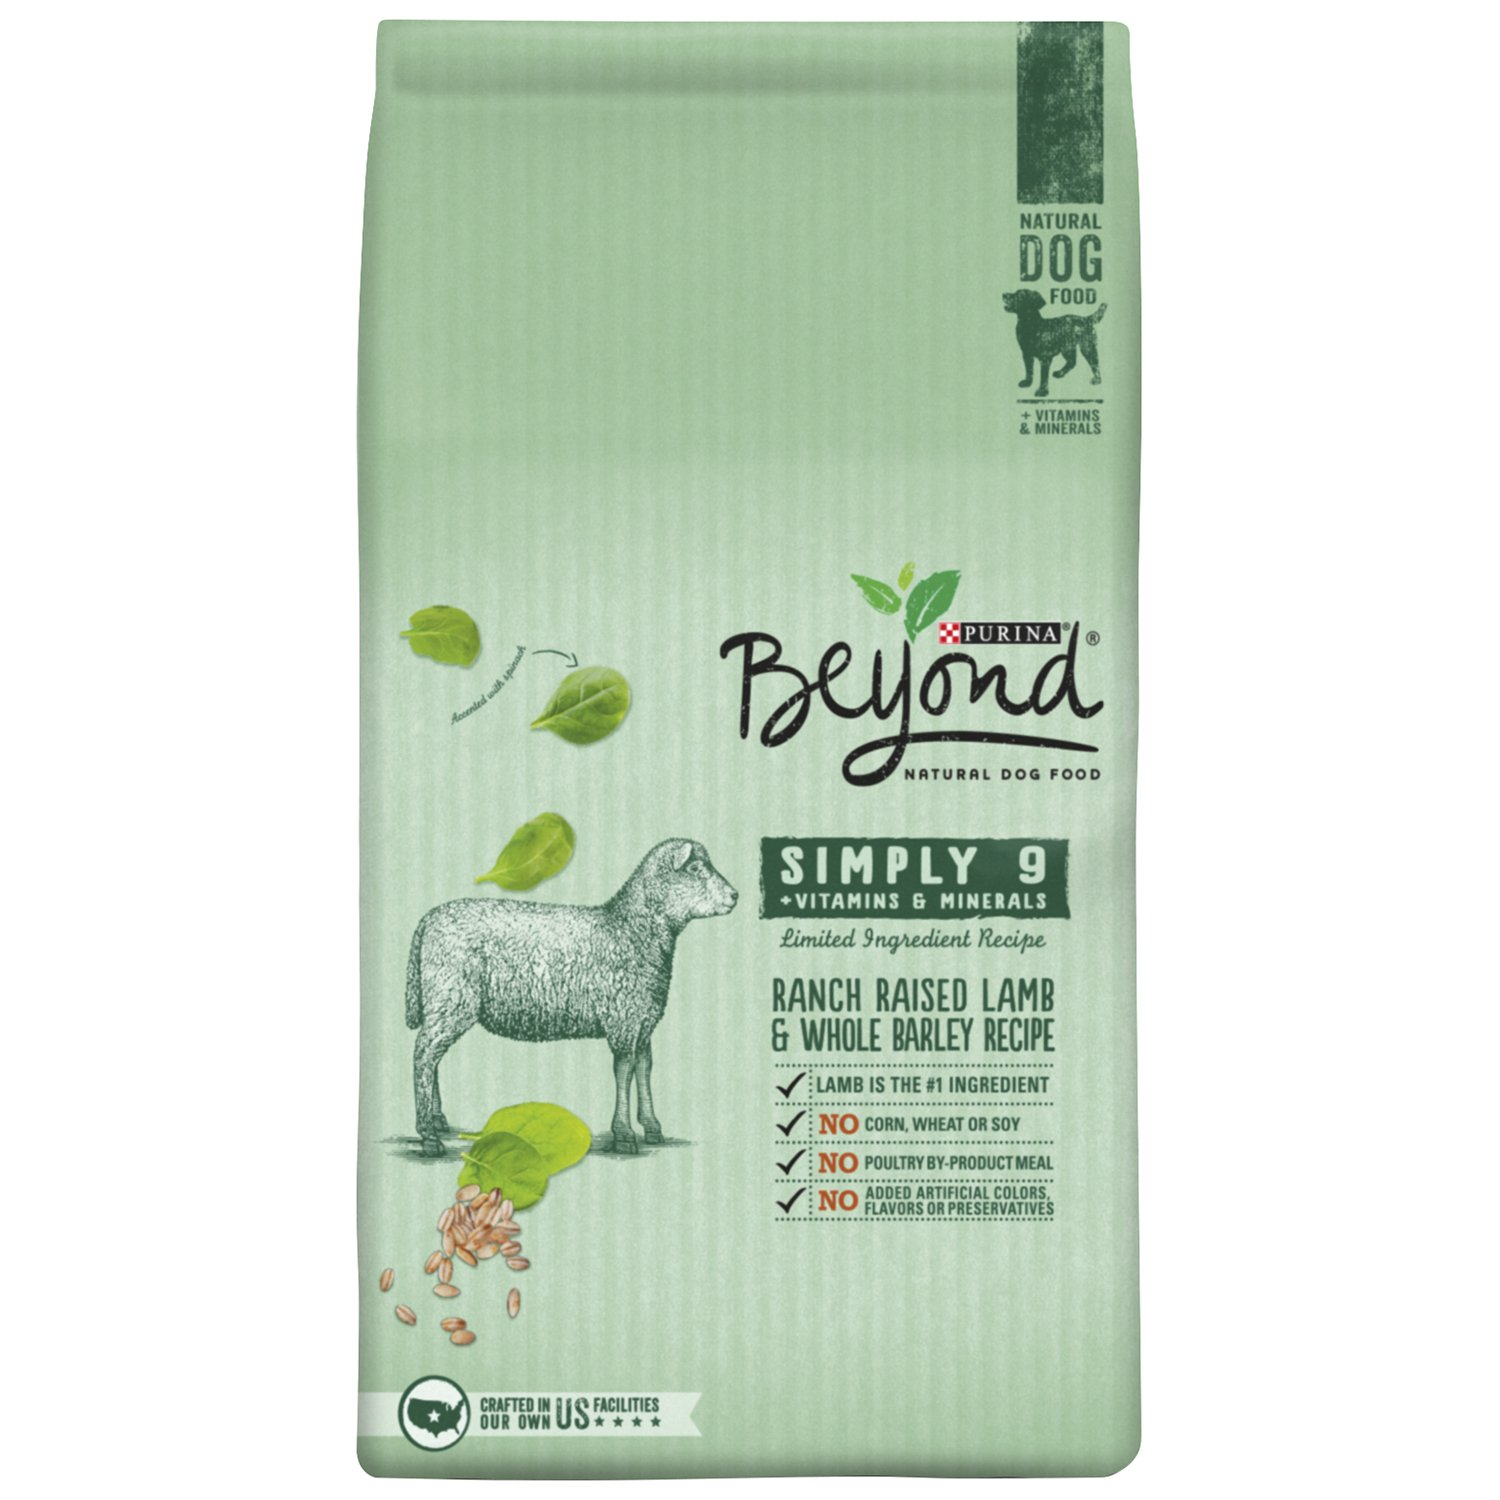 Purina Beyond Cat Food >> Purina Beyond Natural Dry Dog Food, Simply 9, Ranch Raised Lamb and Whole... | eBay